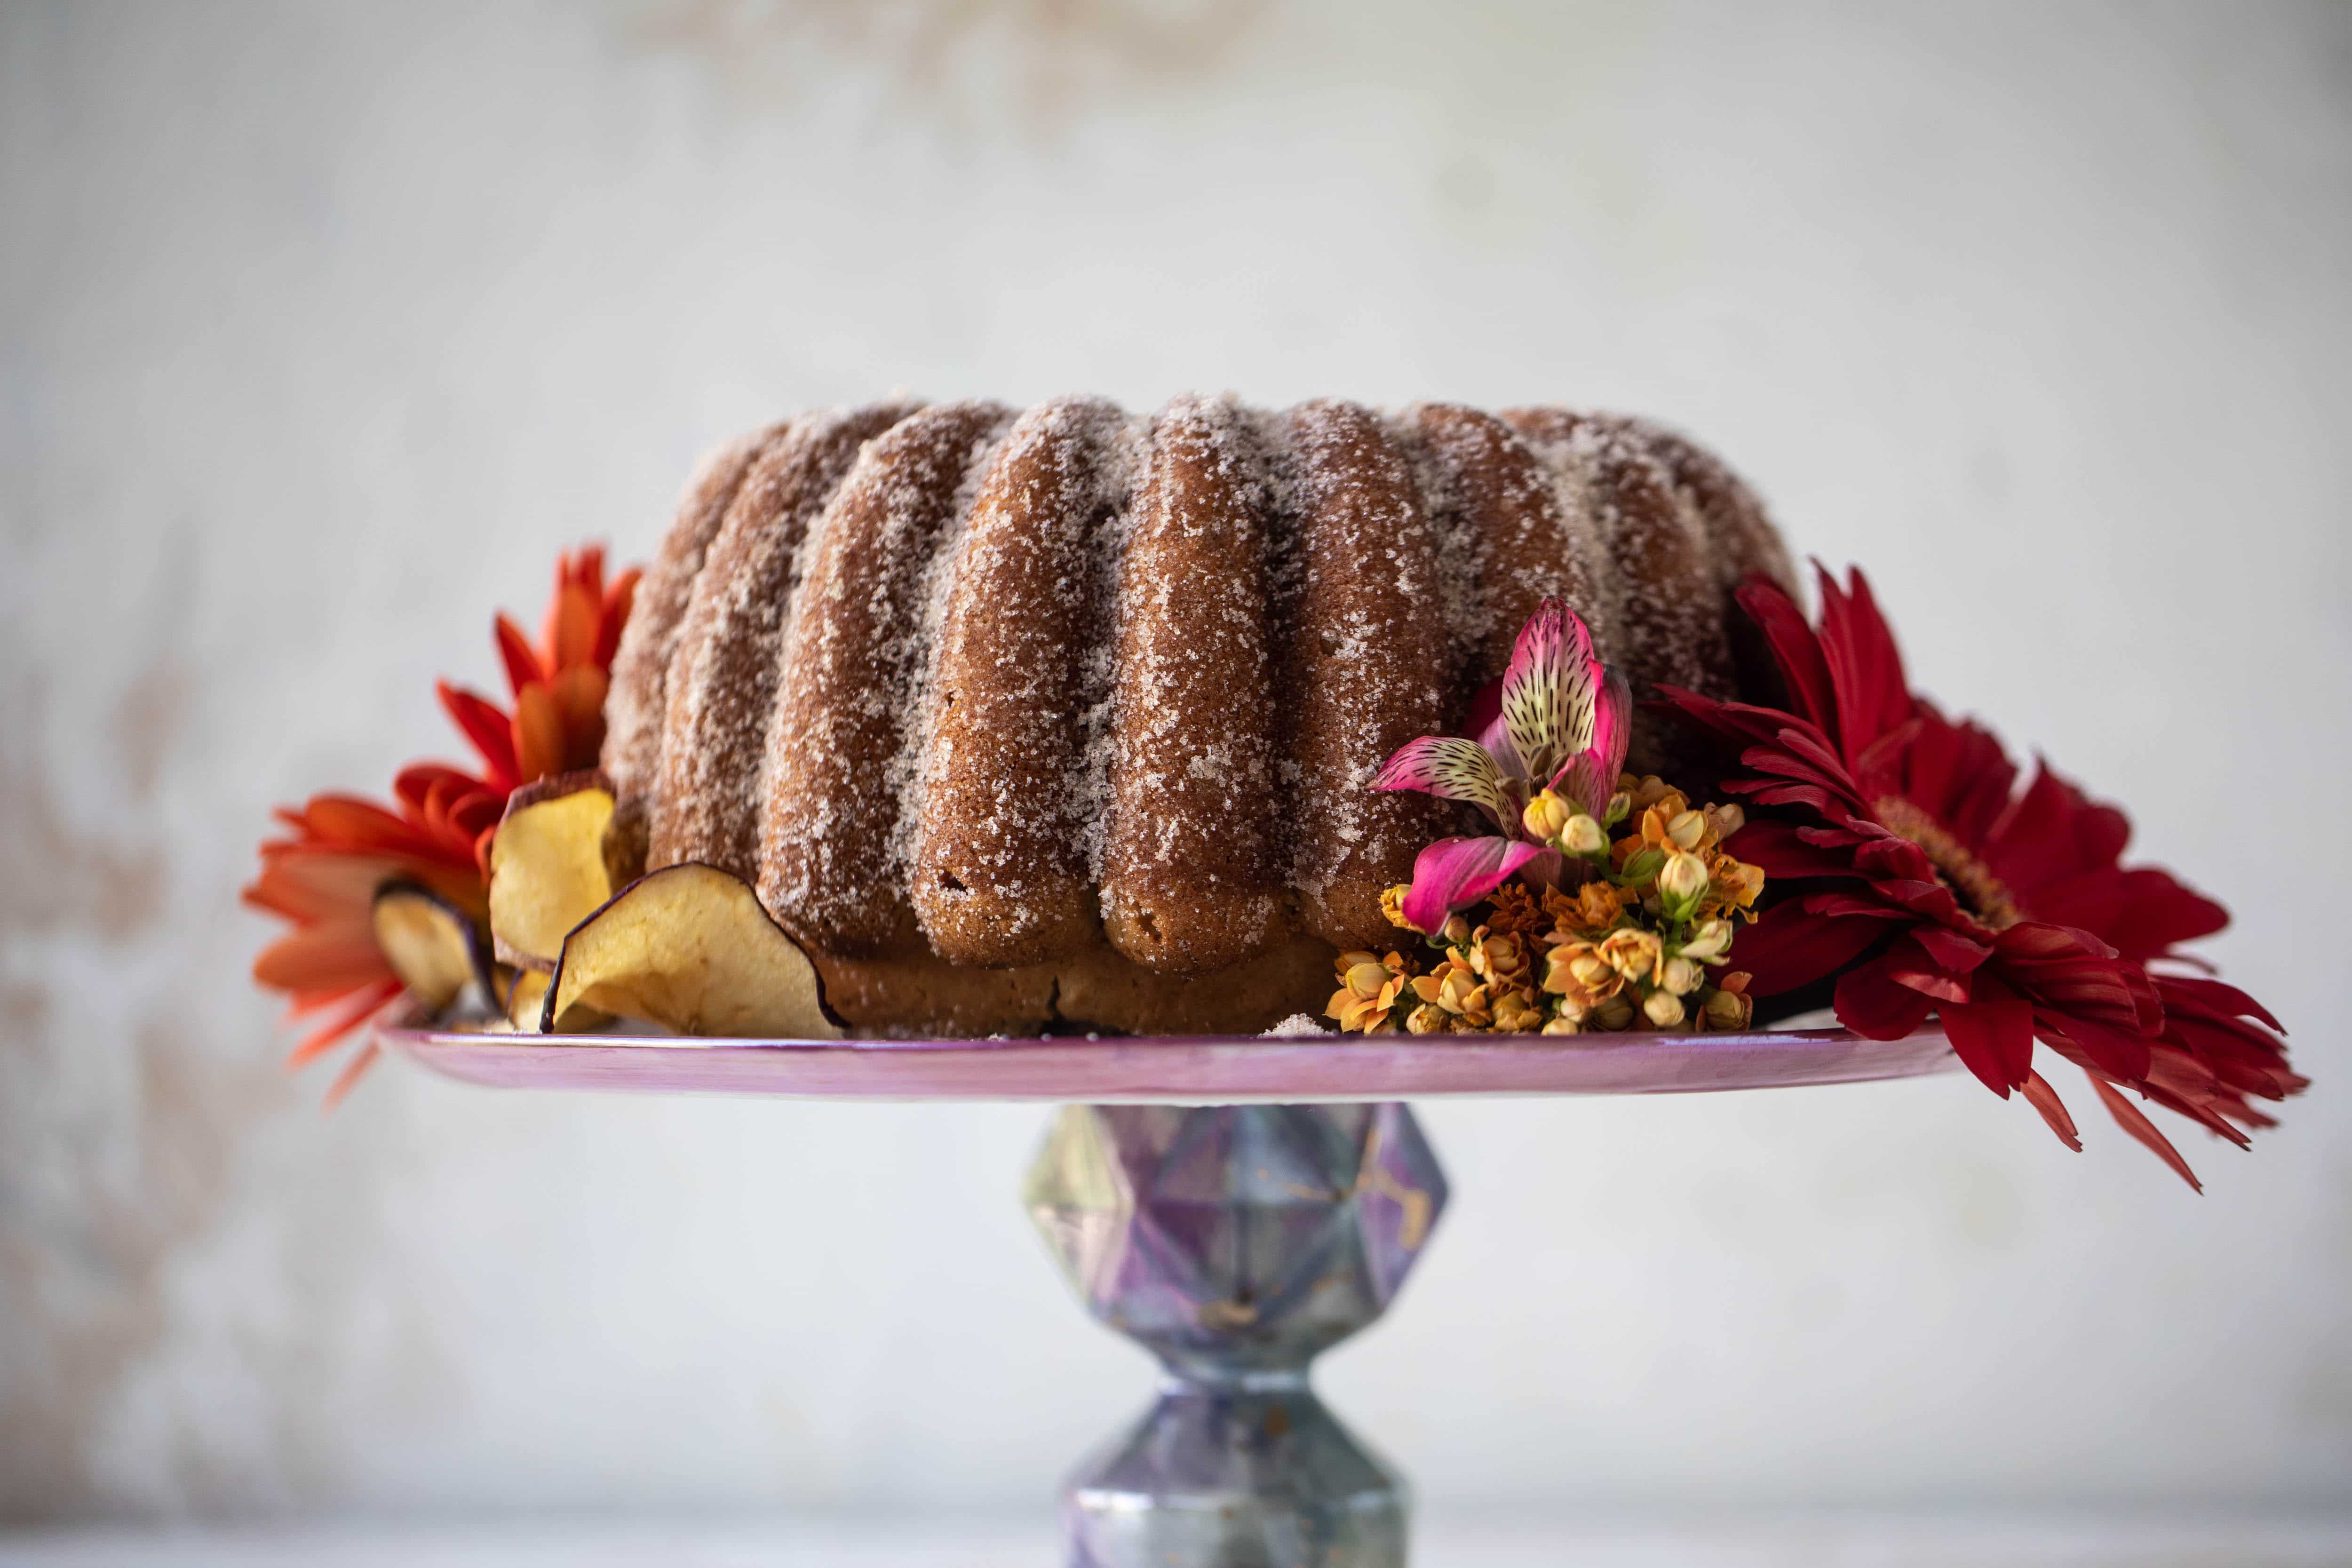 This apple cider donut cake is a huge fall crowd pleaser! Covered in cinnamon sugar and fluffy to perfection. It's incredible!